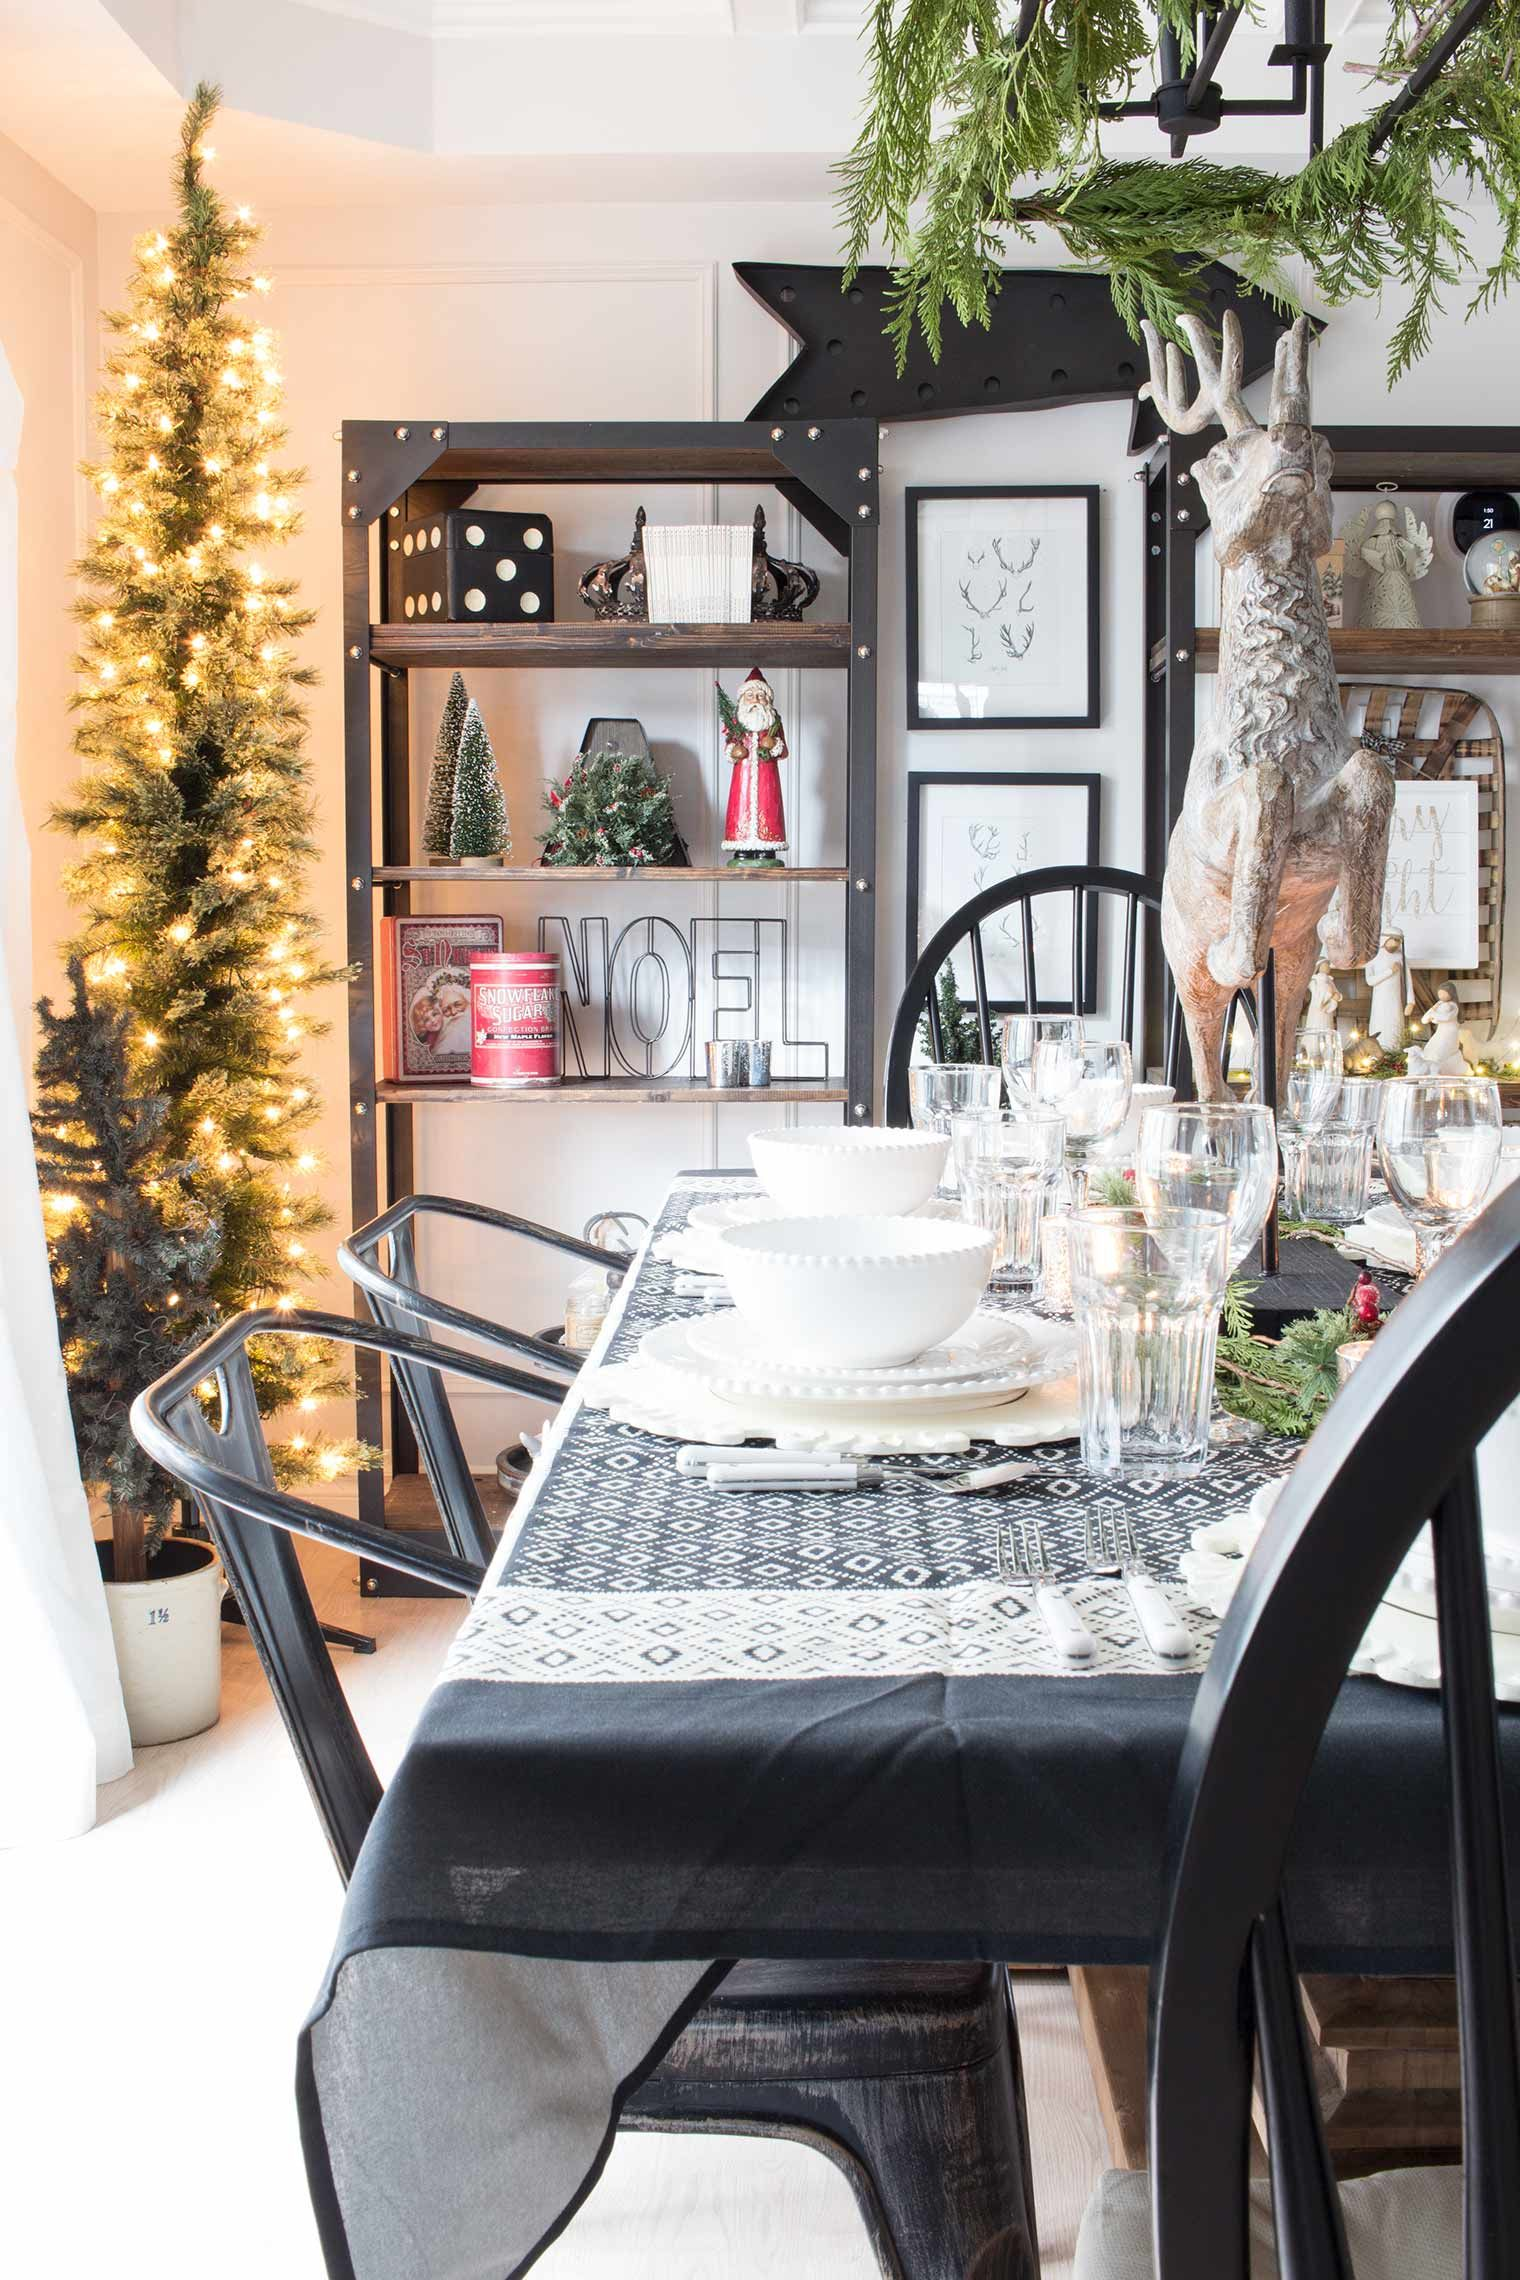 how to decorate your dining room and shelves the simple way for christmas - Simple Ways To Decorate Your House For Christmas